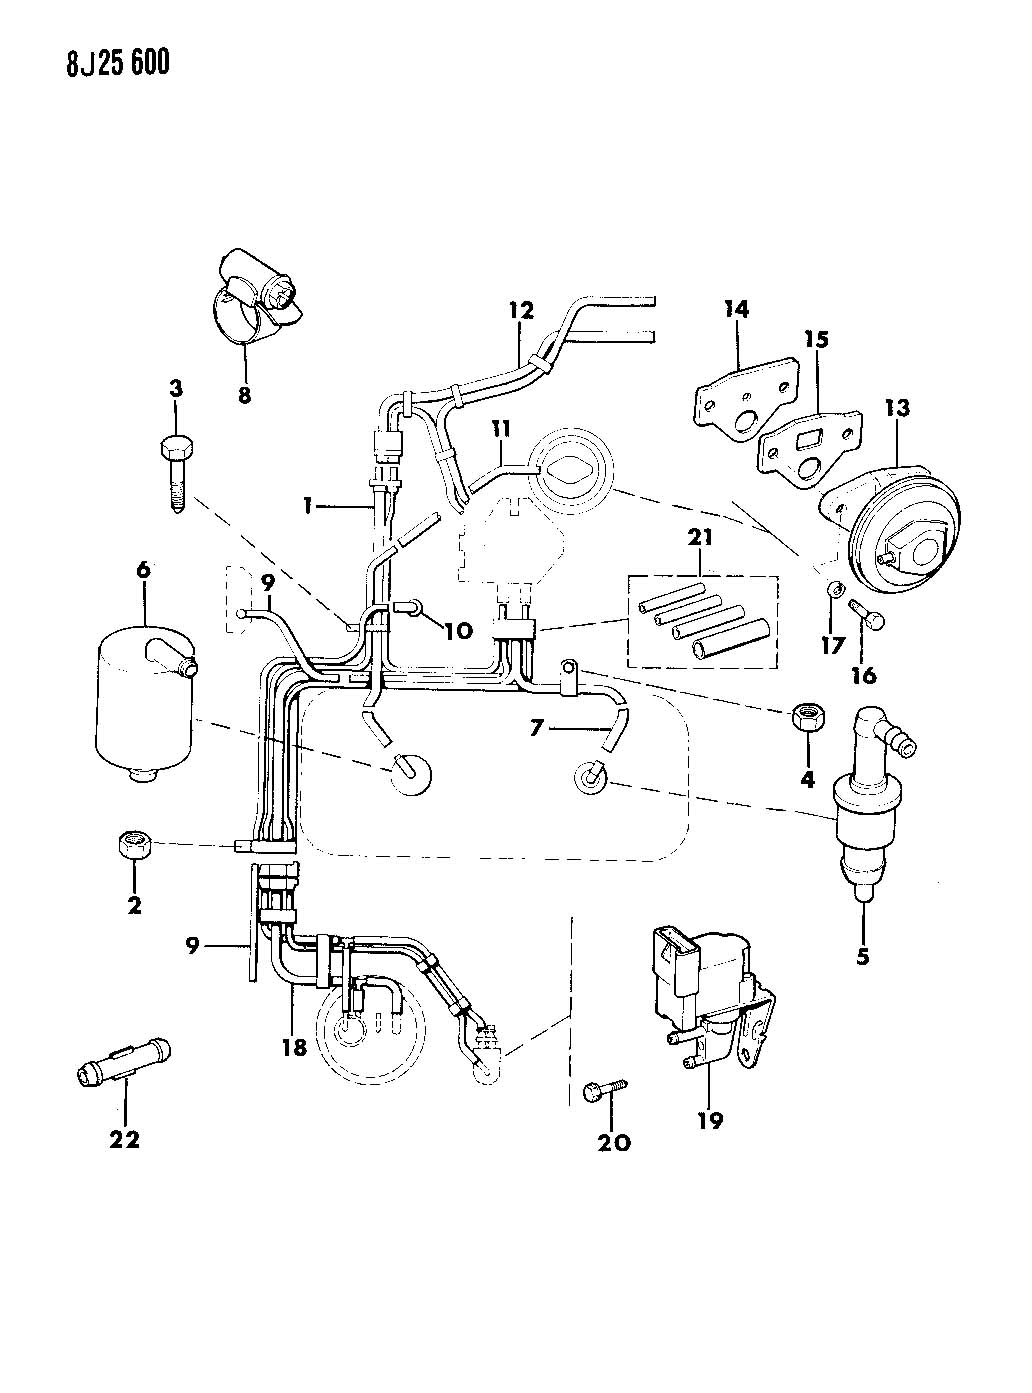 Jeep Wrangler 4 2 Vacuum Diagram Jeep Auto Fuse Box Diagram